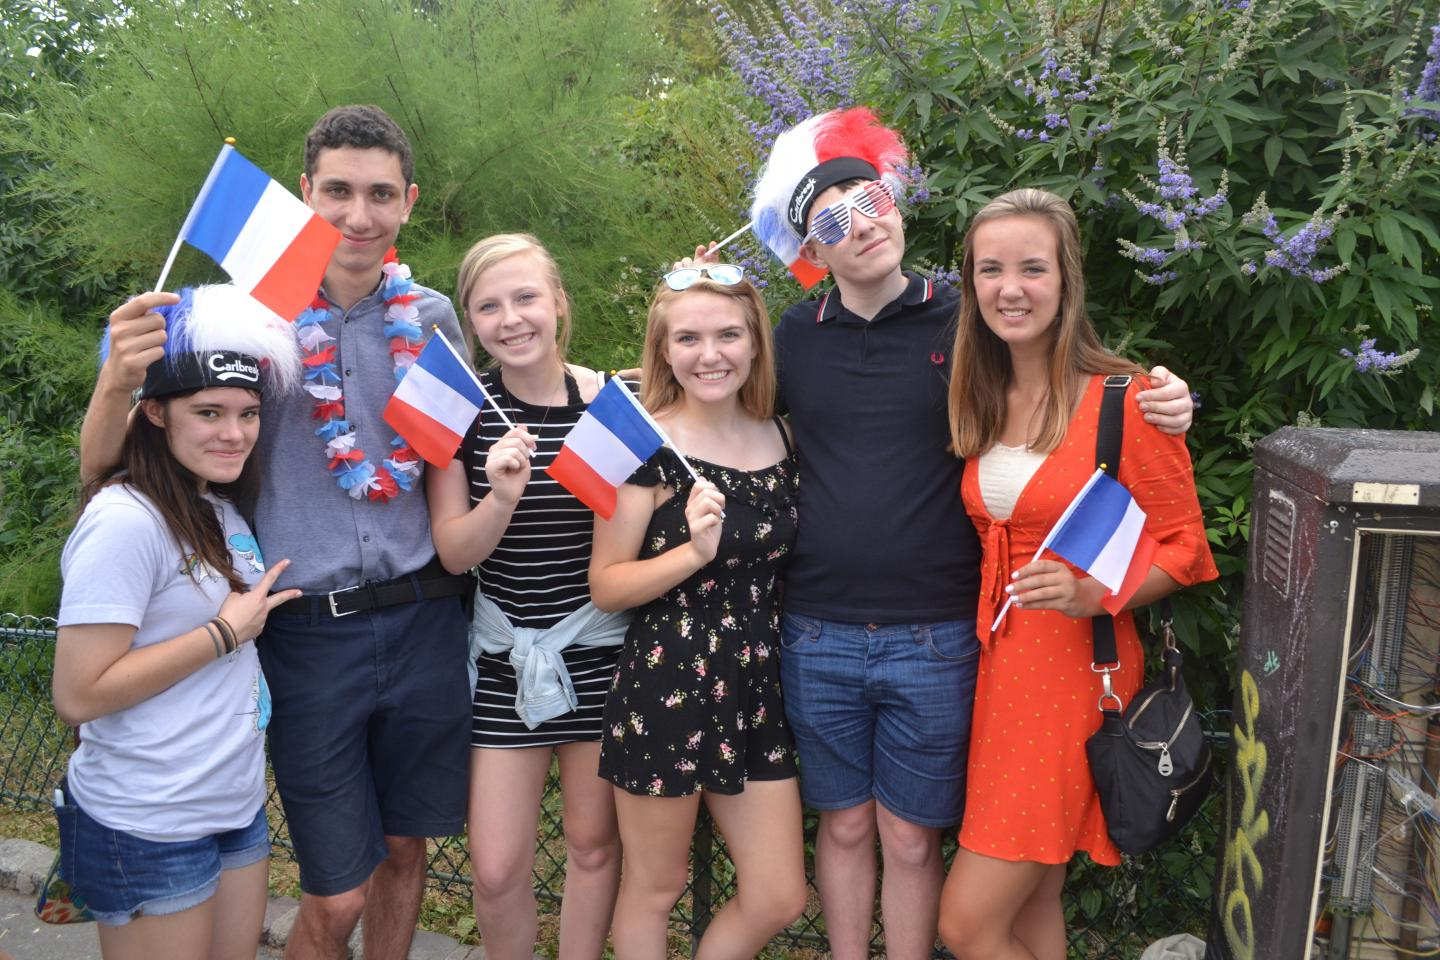 Teenage travelers celebrate Bastille Day in France on summer youth travel program